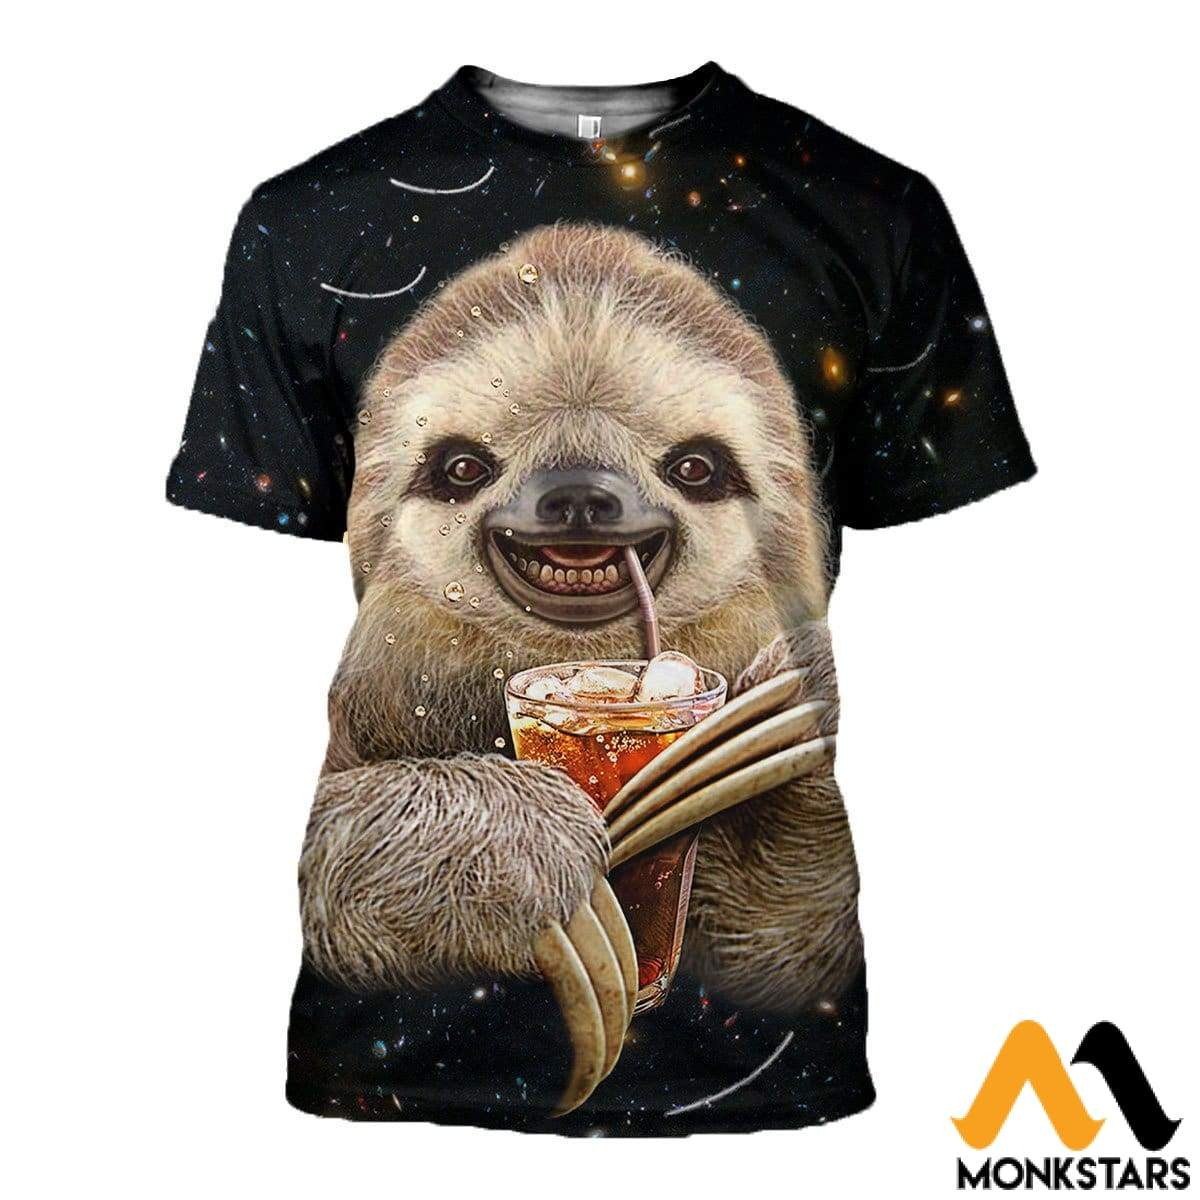 3D All Over Printed Sloth Shirts And Shorts T-Shirt / Xs Clothes